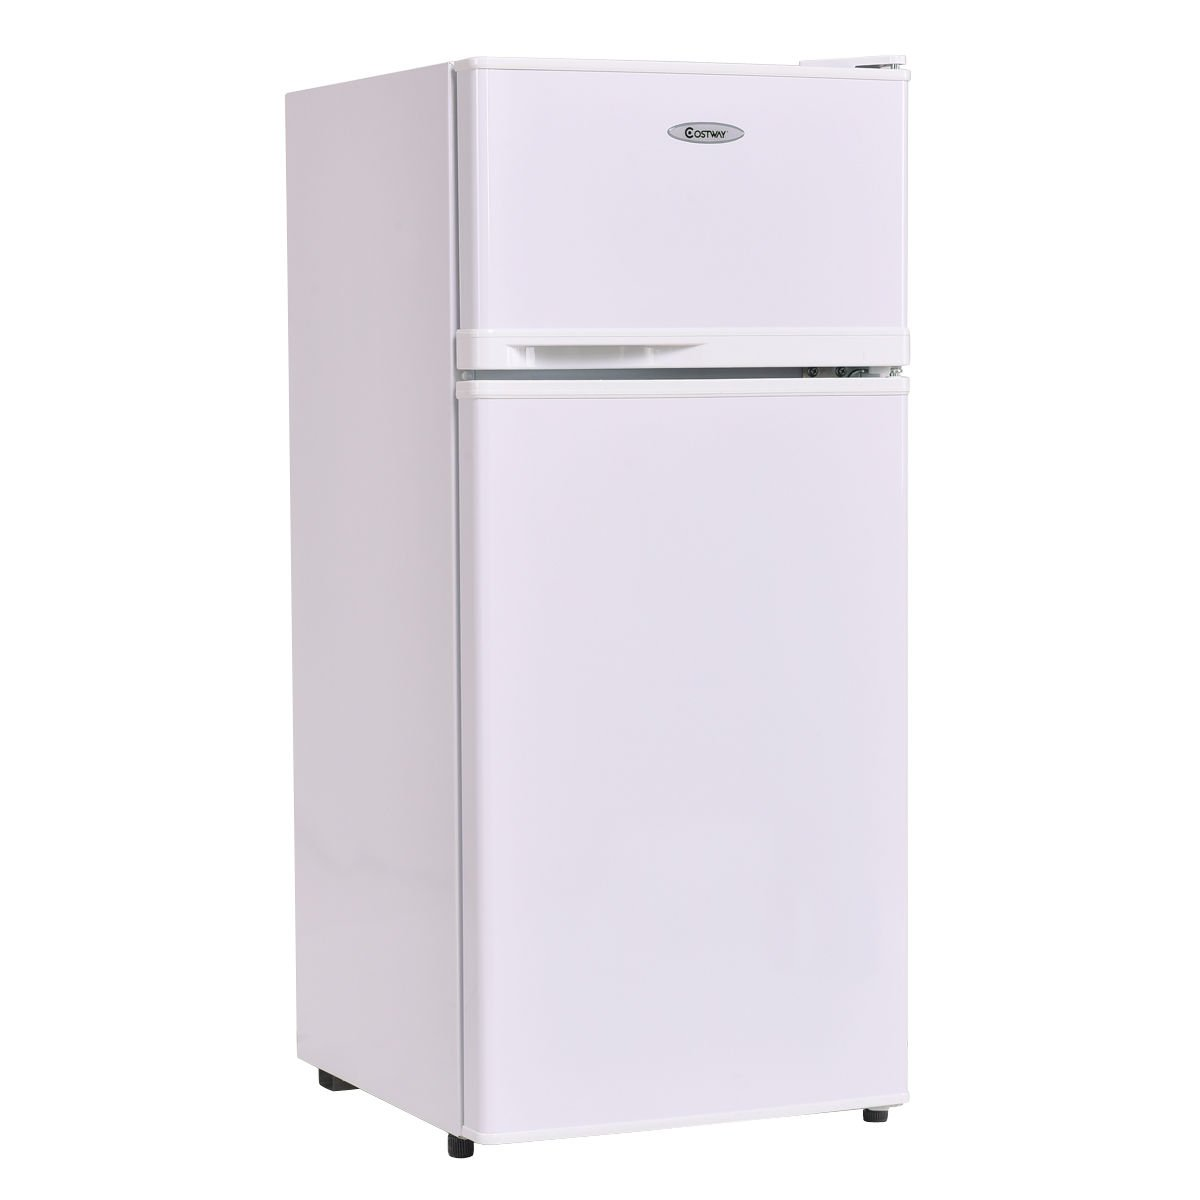 Costway 3.4 cu. ft. 2 Door Compact Mini Refrigerator Freezer Cooler,White